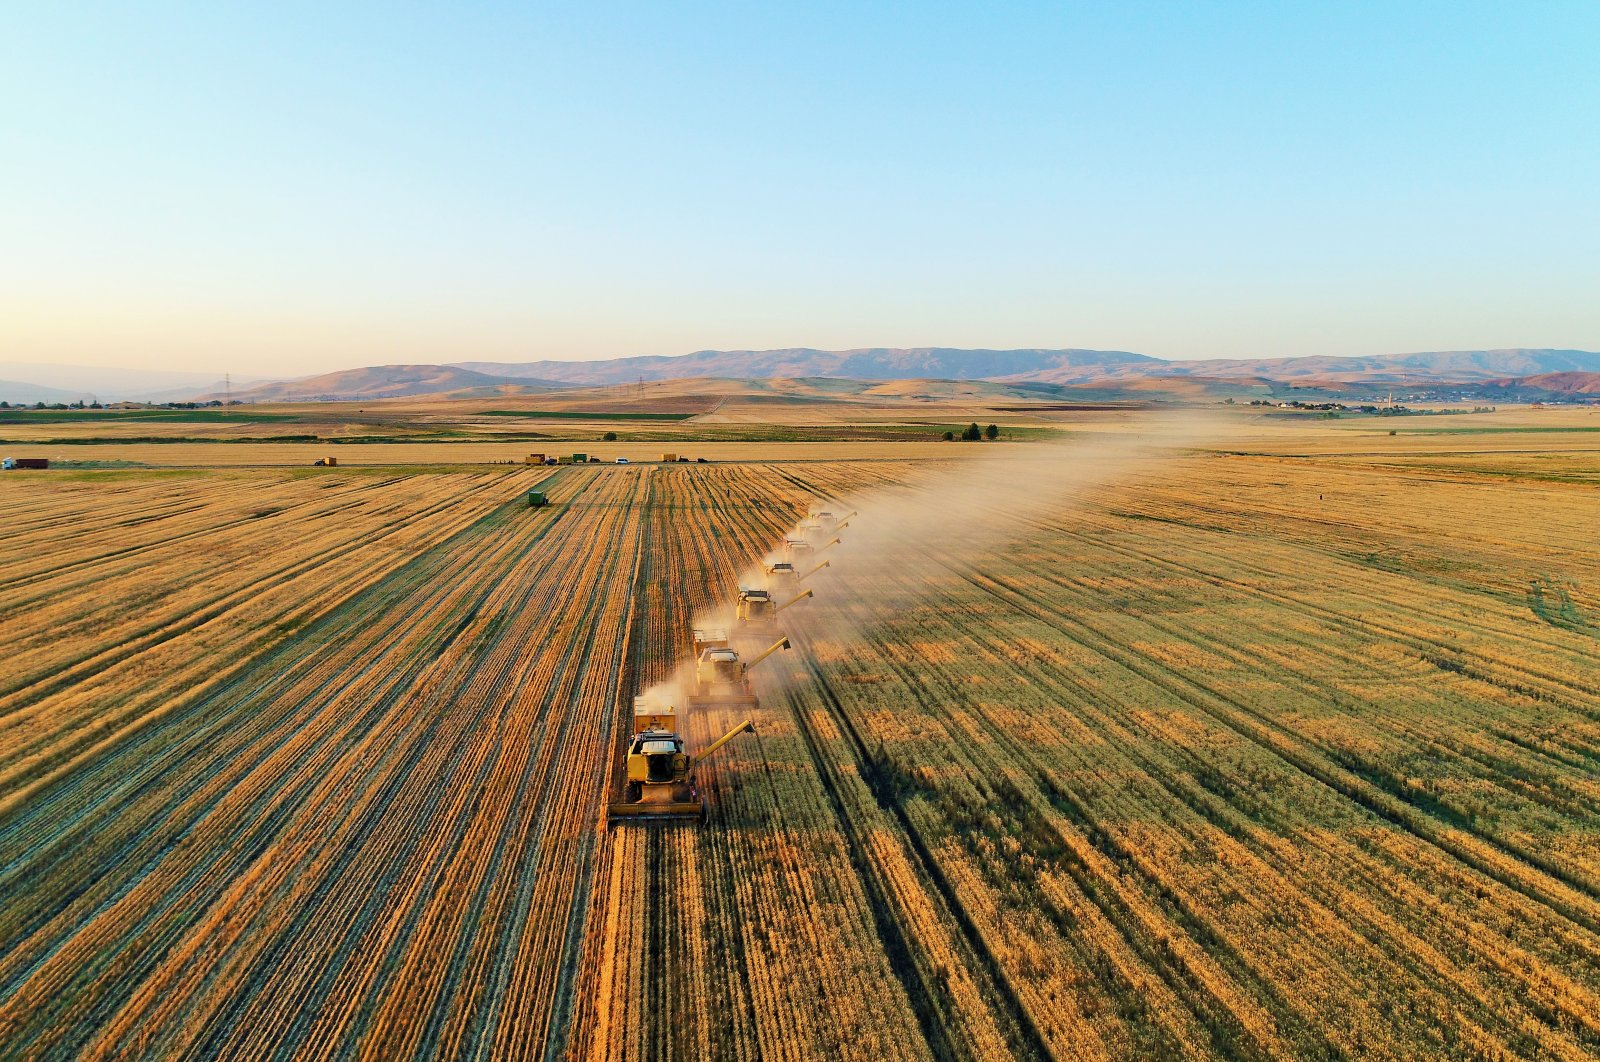 Farmers harvest in one of Turkey's most fruitful cereal hubs in the eastern region, Muş province, Aug. 6, 2019. (AA Photo)